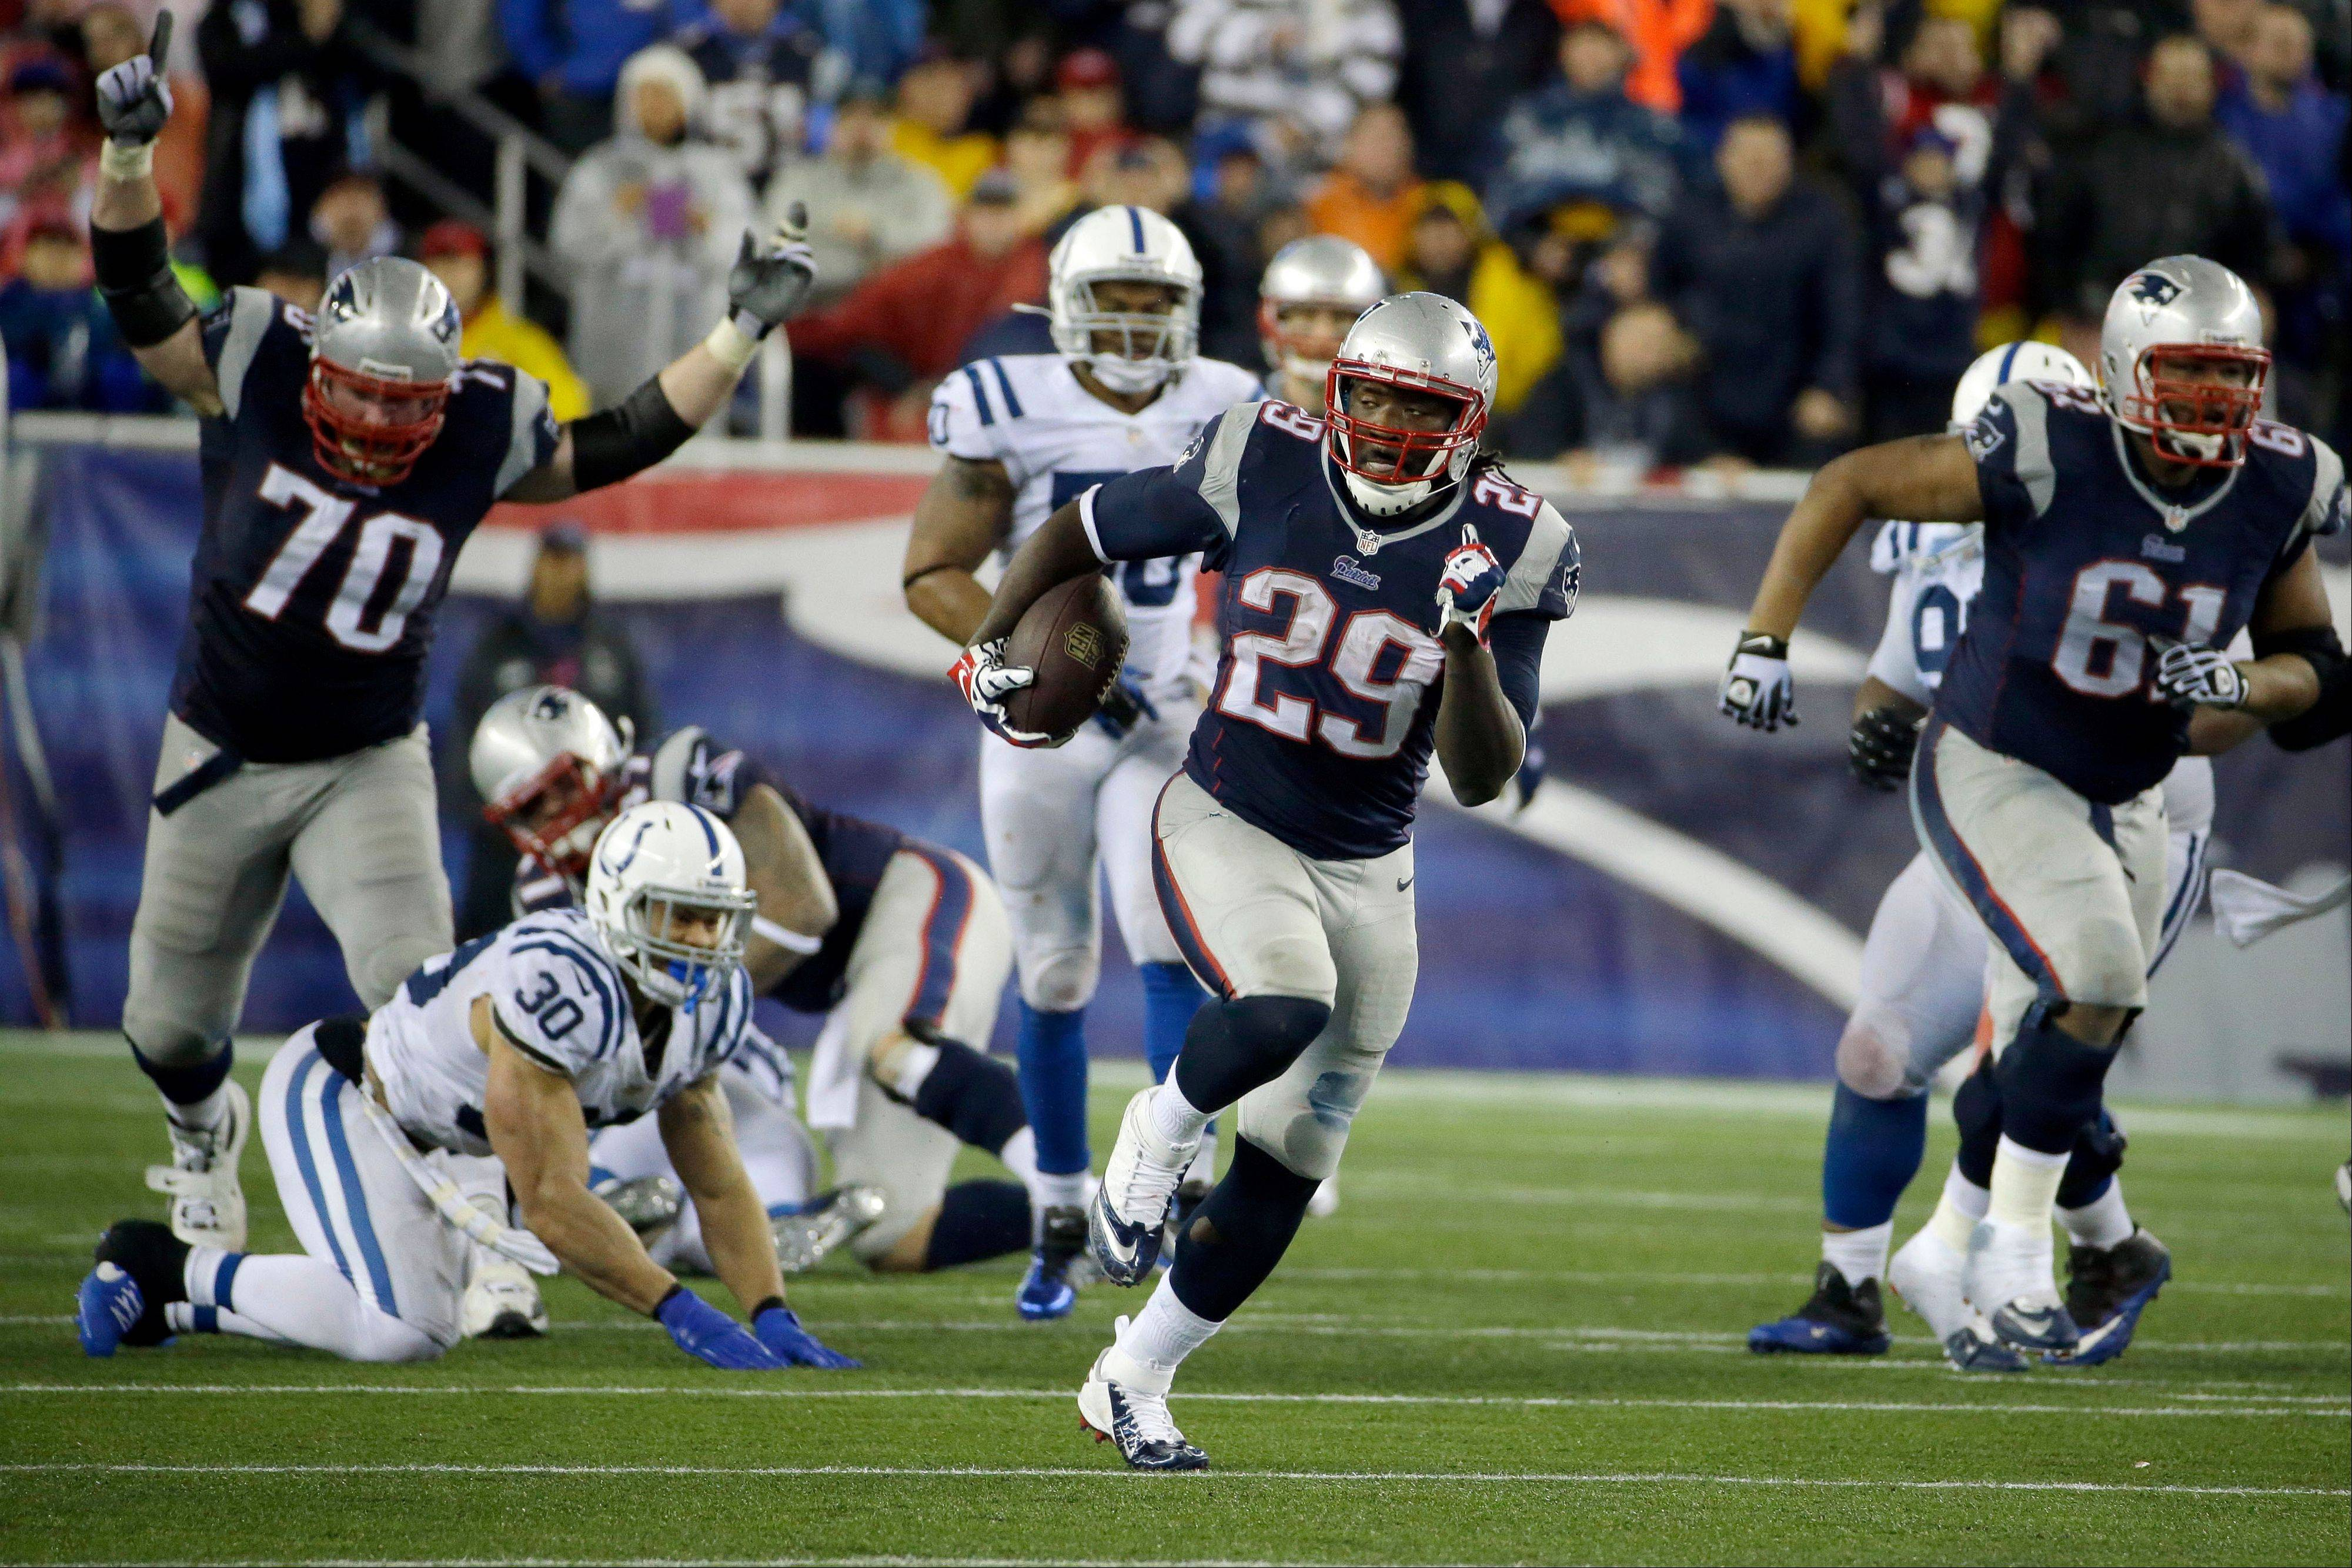 Blount has 4 TD runs, Pats top Colts 43-22